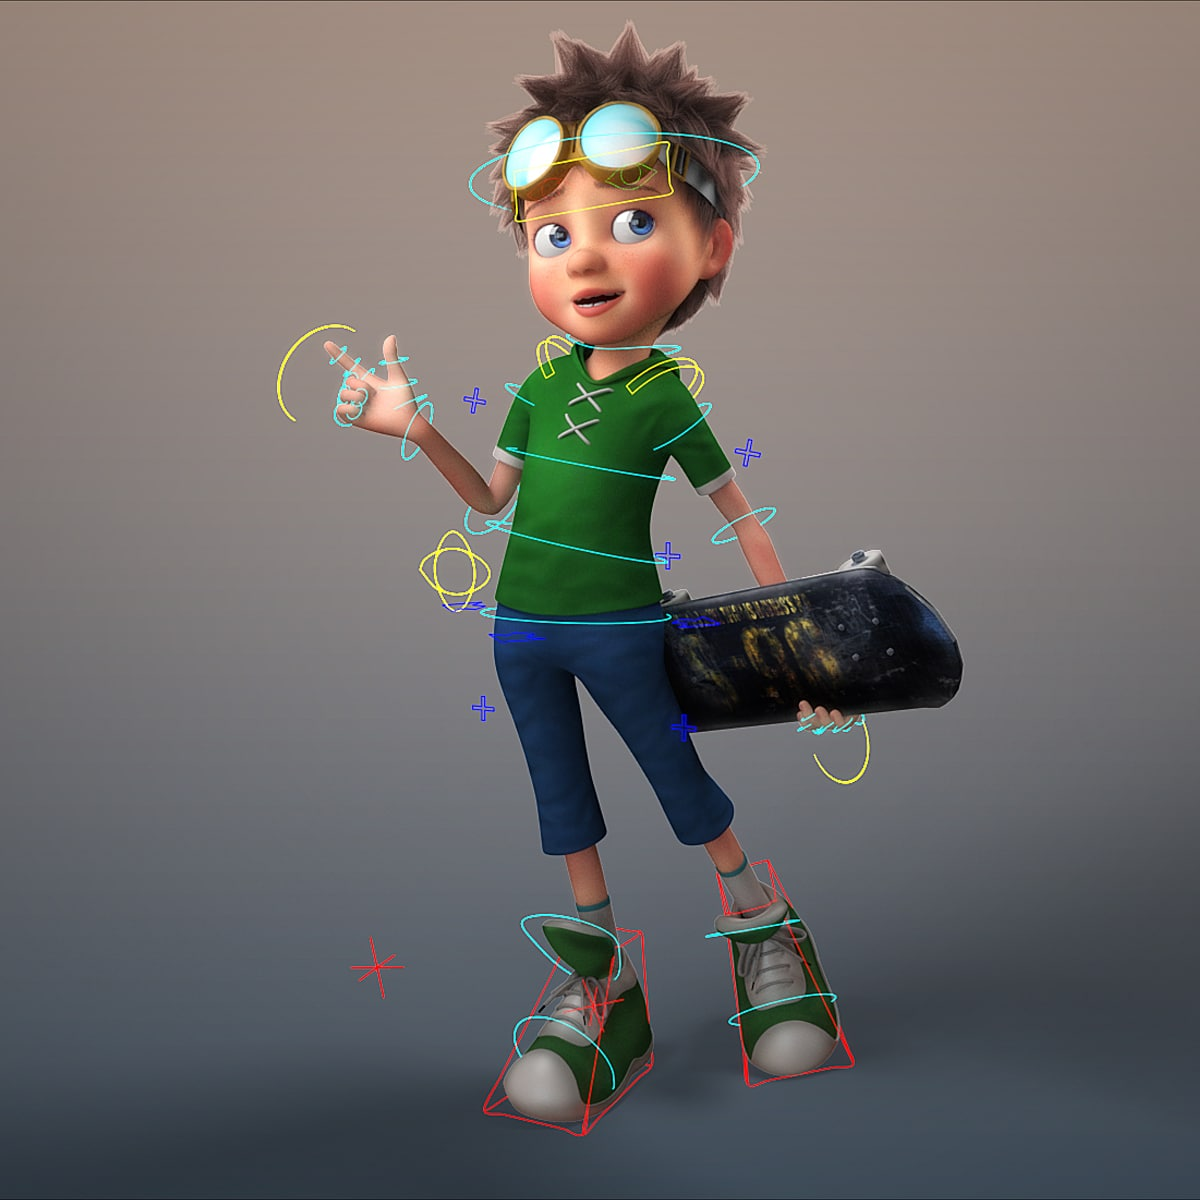 Cartoon Characters 3d Model : Obj cartoon boy rigged